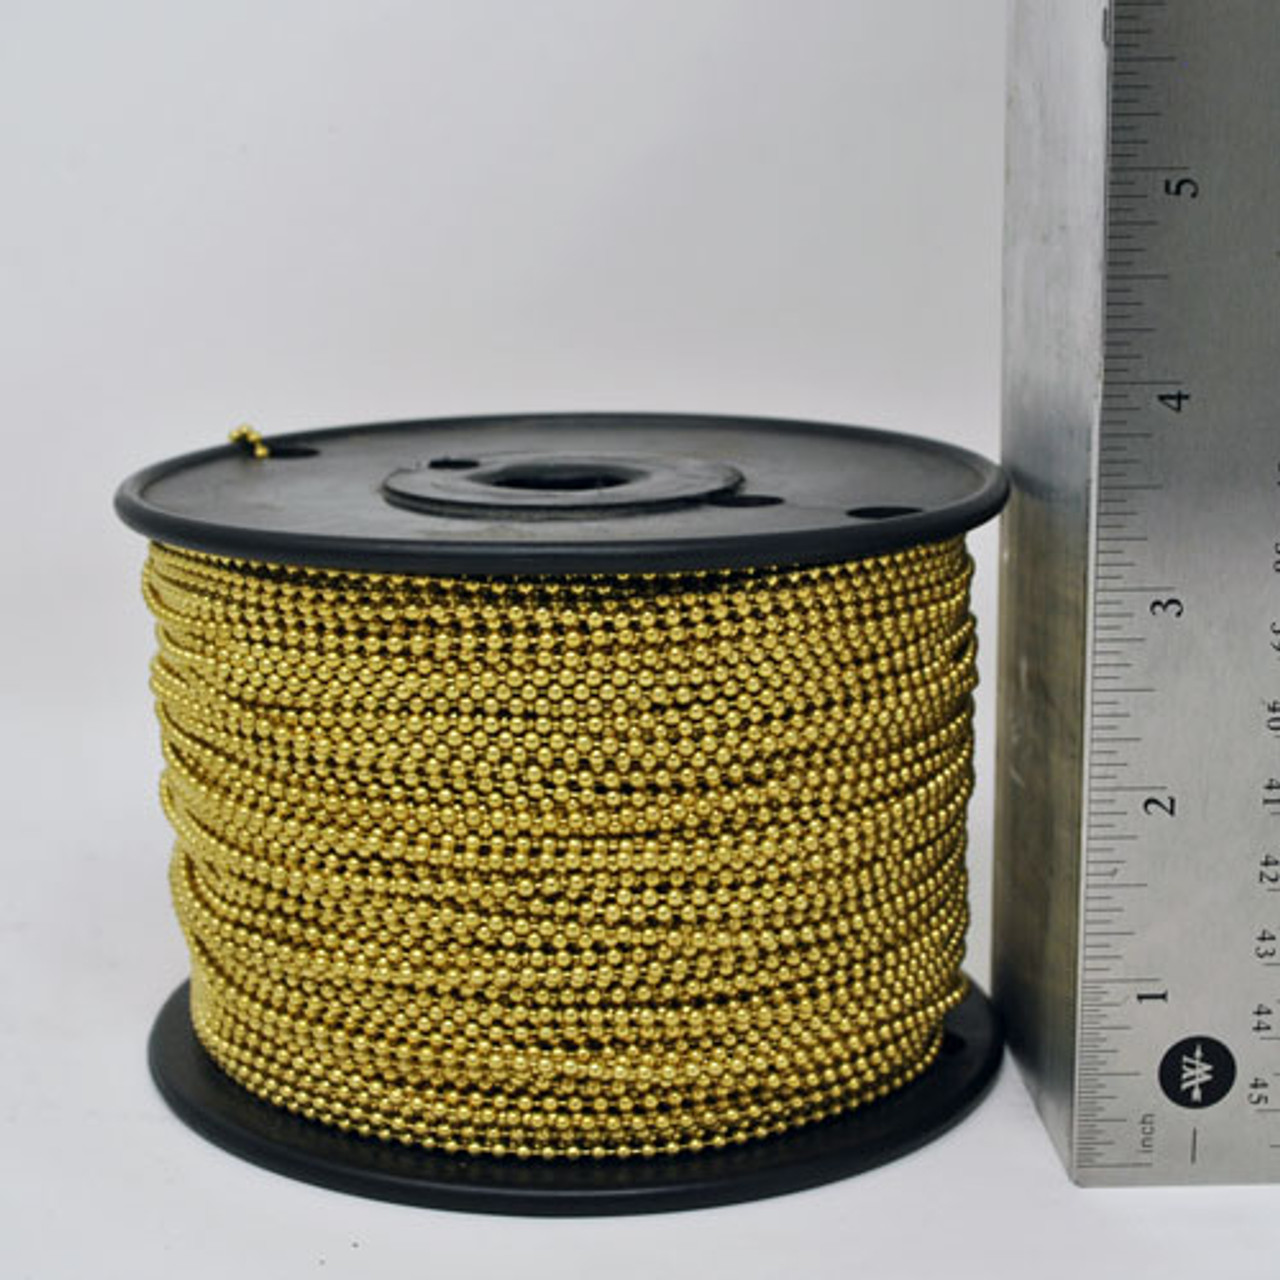 500 Feet of #3 or 2.4mm diameter yellow brass bead chain/ball chain on a spool. These rolls of yellow brass ball chain are the most cost effective way to purchase this style/material of bead chain.